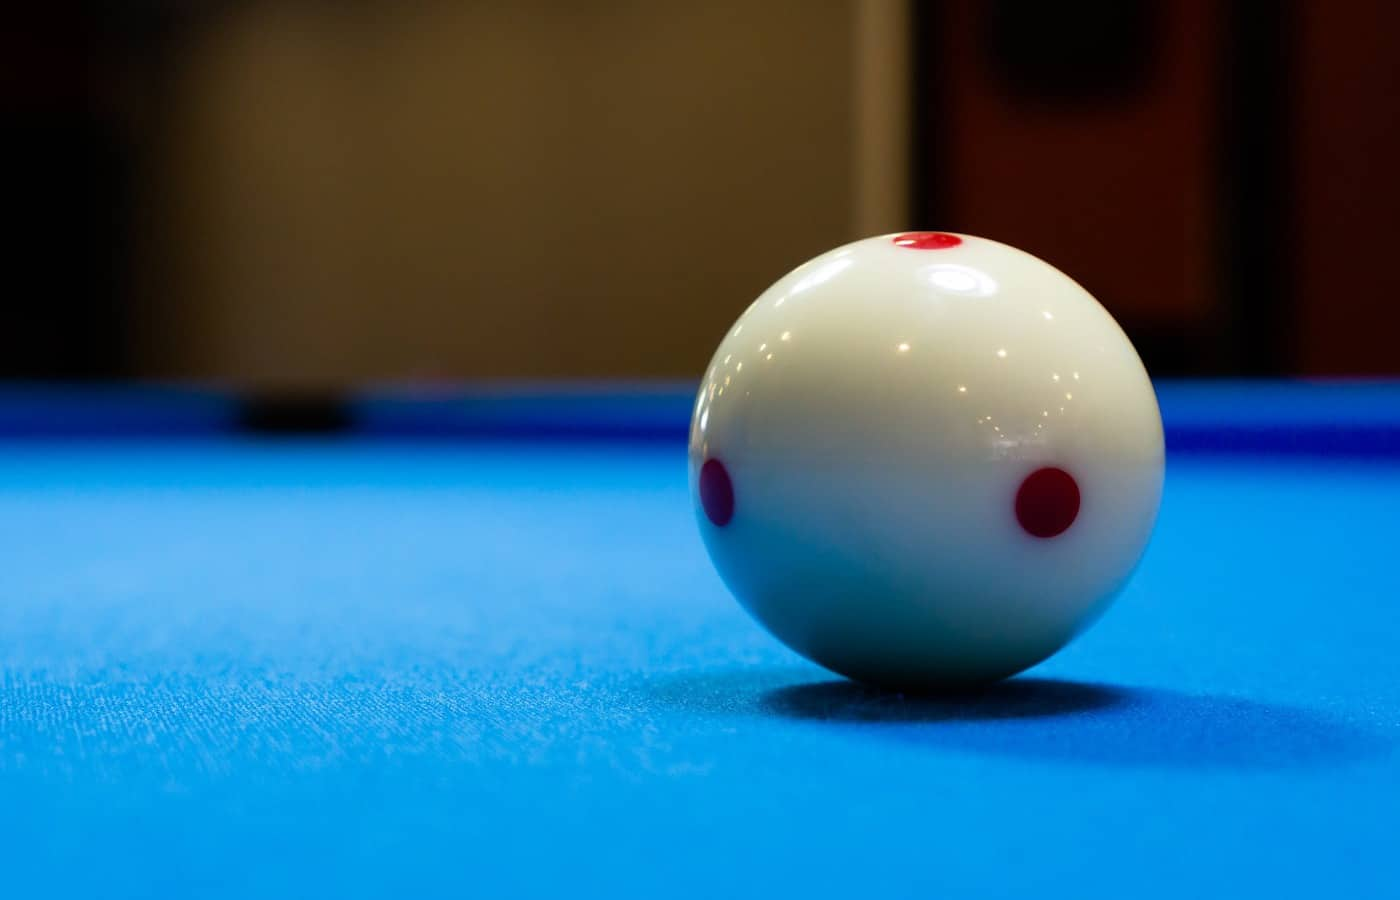 why do cue balls have red dots